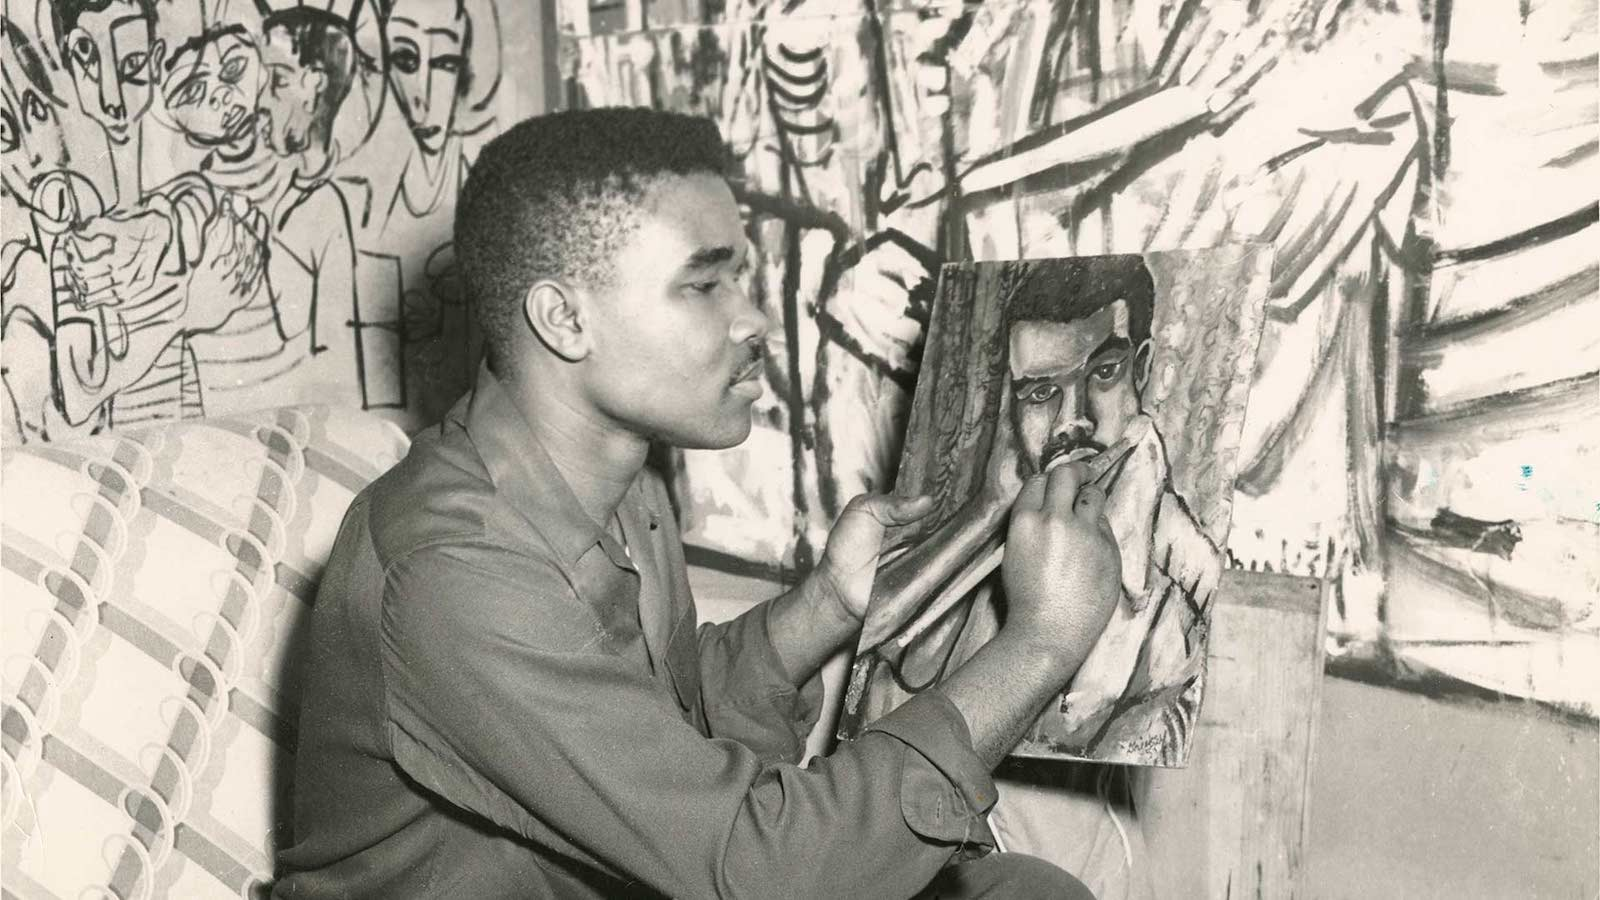 David C. Driskell paints